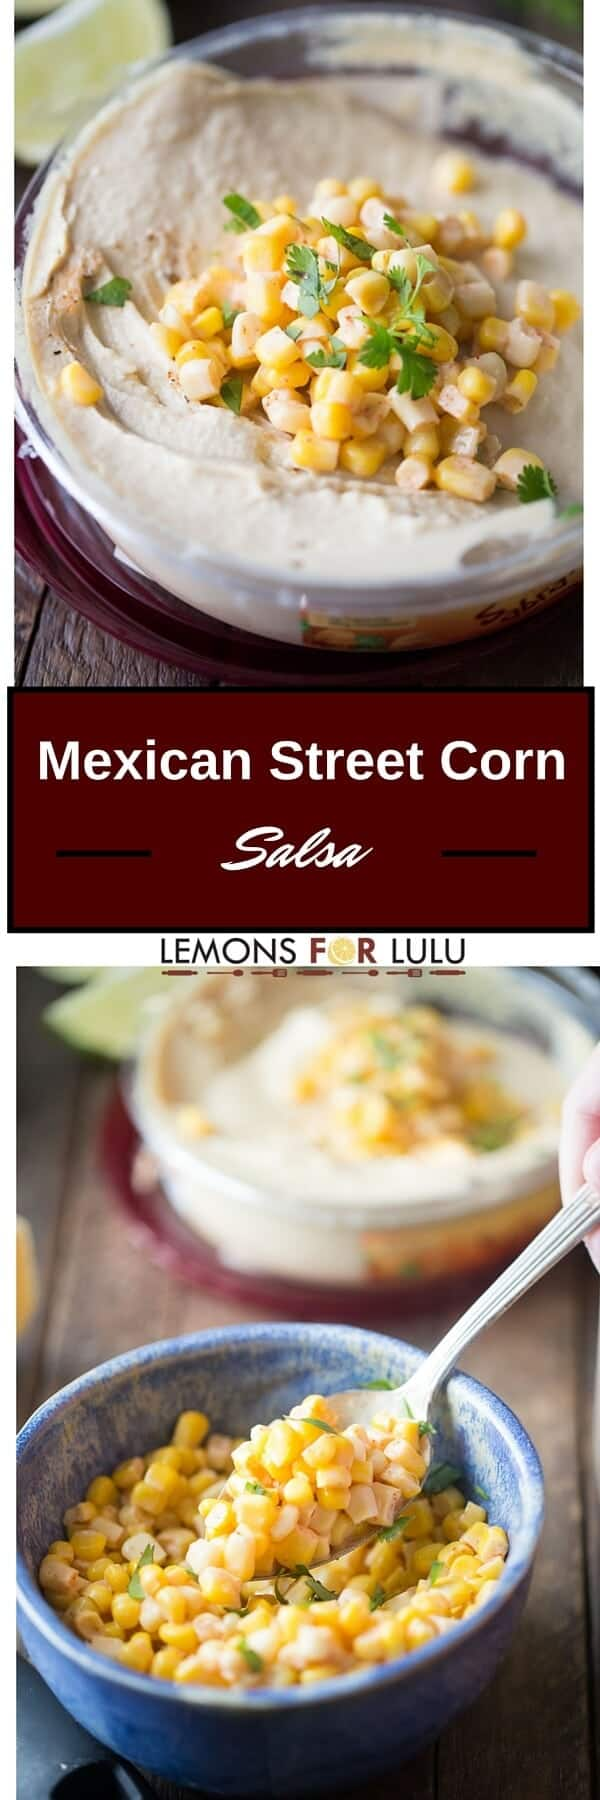 This Mexican street corn salsa is so easy and so versatile; it's a wonderful dip, yet it is such a flavorful topping for tacos, steak or chicken. Serve as a side or stir in with your favorite hummus or dip. You just cannot go wrong with this easy salsa recipe!